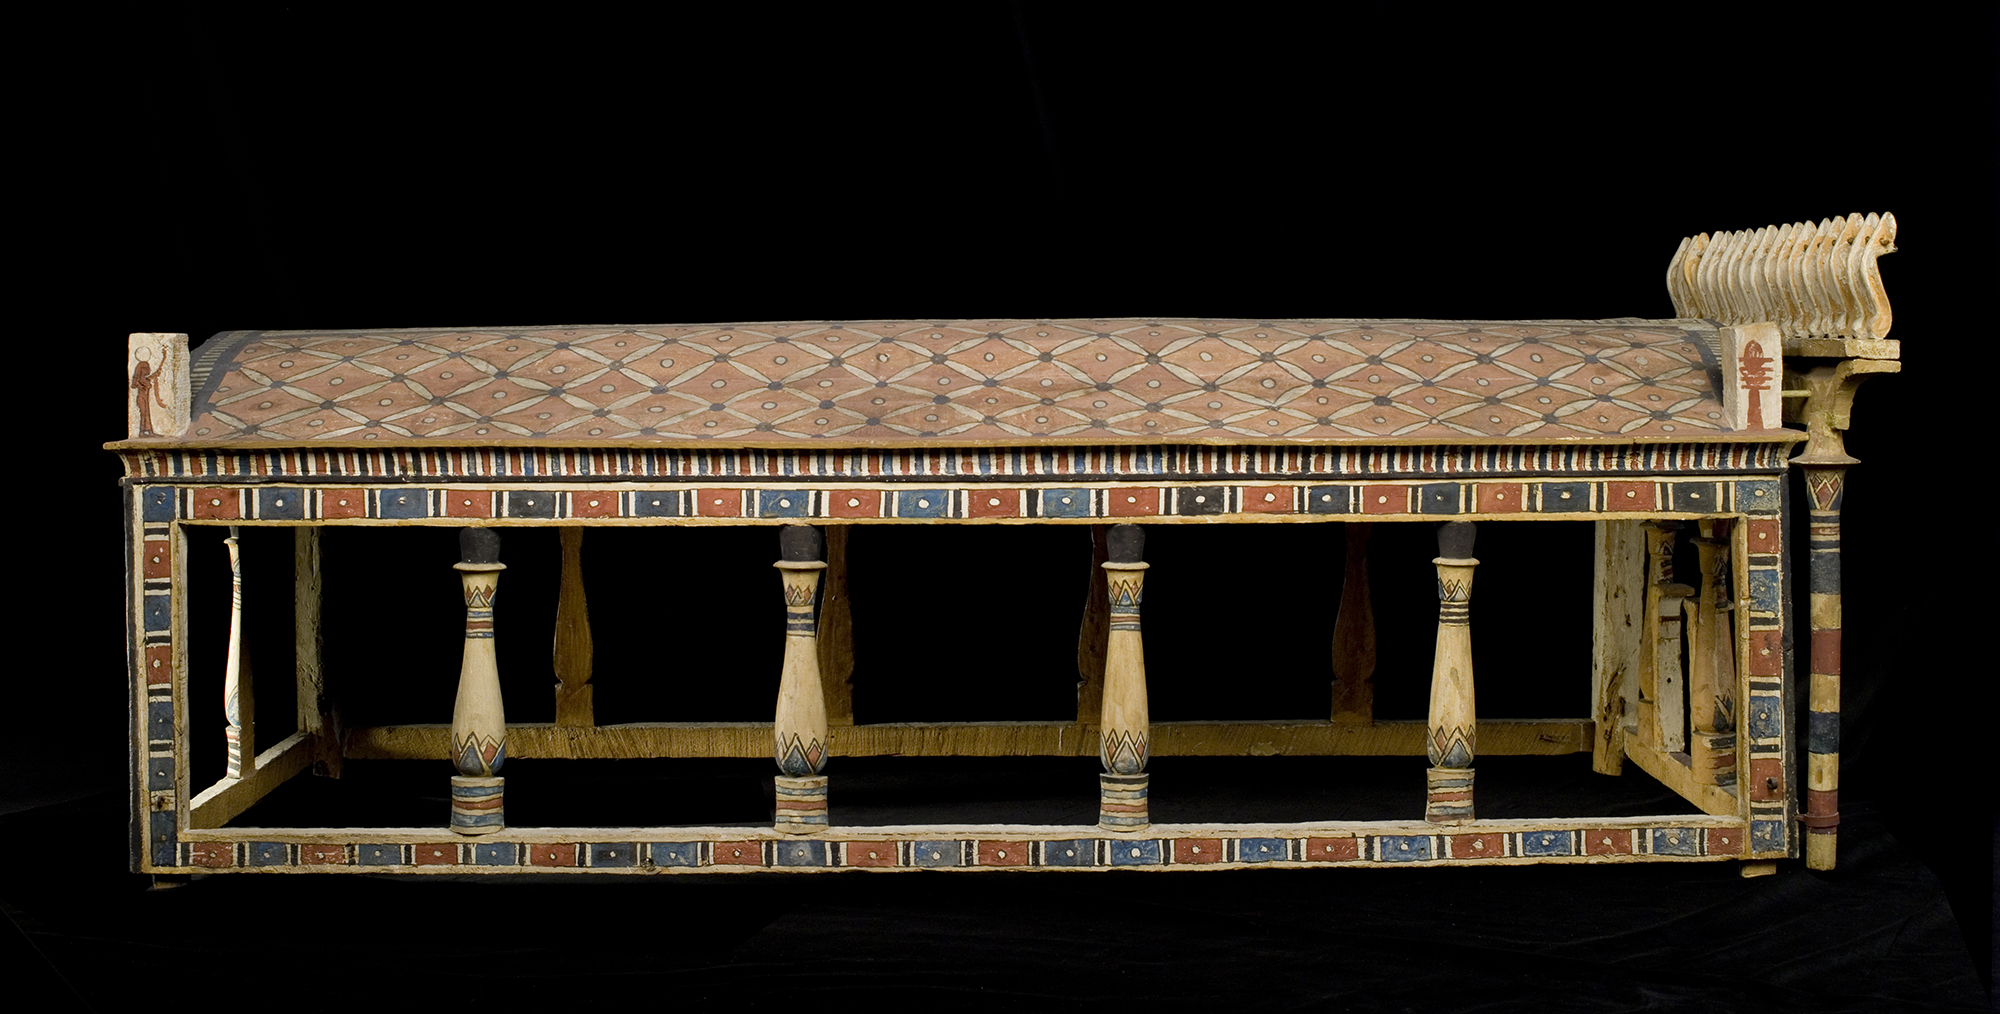 Canopy of sycamore-fig wood painted in red, black, blue, yellow and white in the shape of a shrine, with an arched roof and corner-posts : Ancient Egyptian, excavated by A.H. Rhind in the tomb of Montsuef at Sheikh Abd el-Qurna, Thebes, Early Roman period, c.9BC